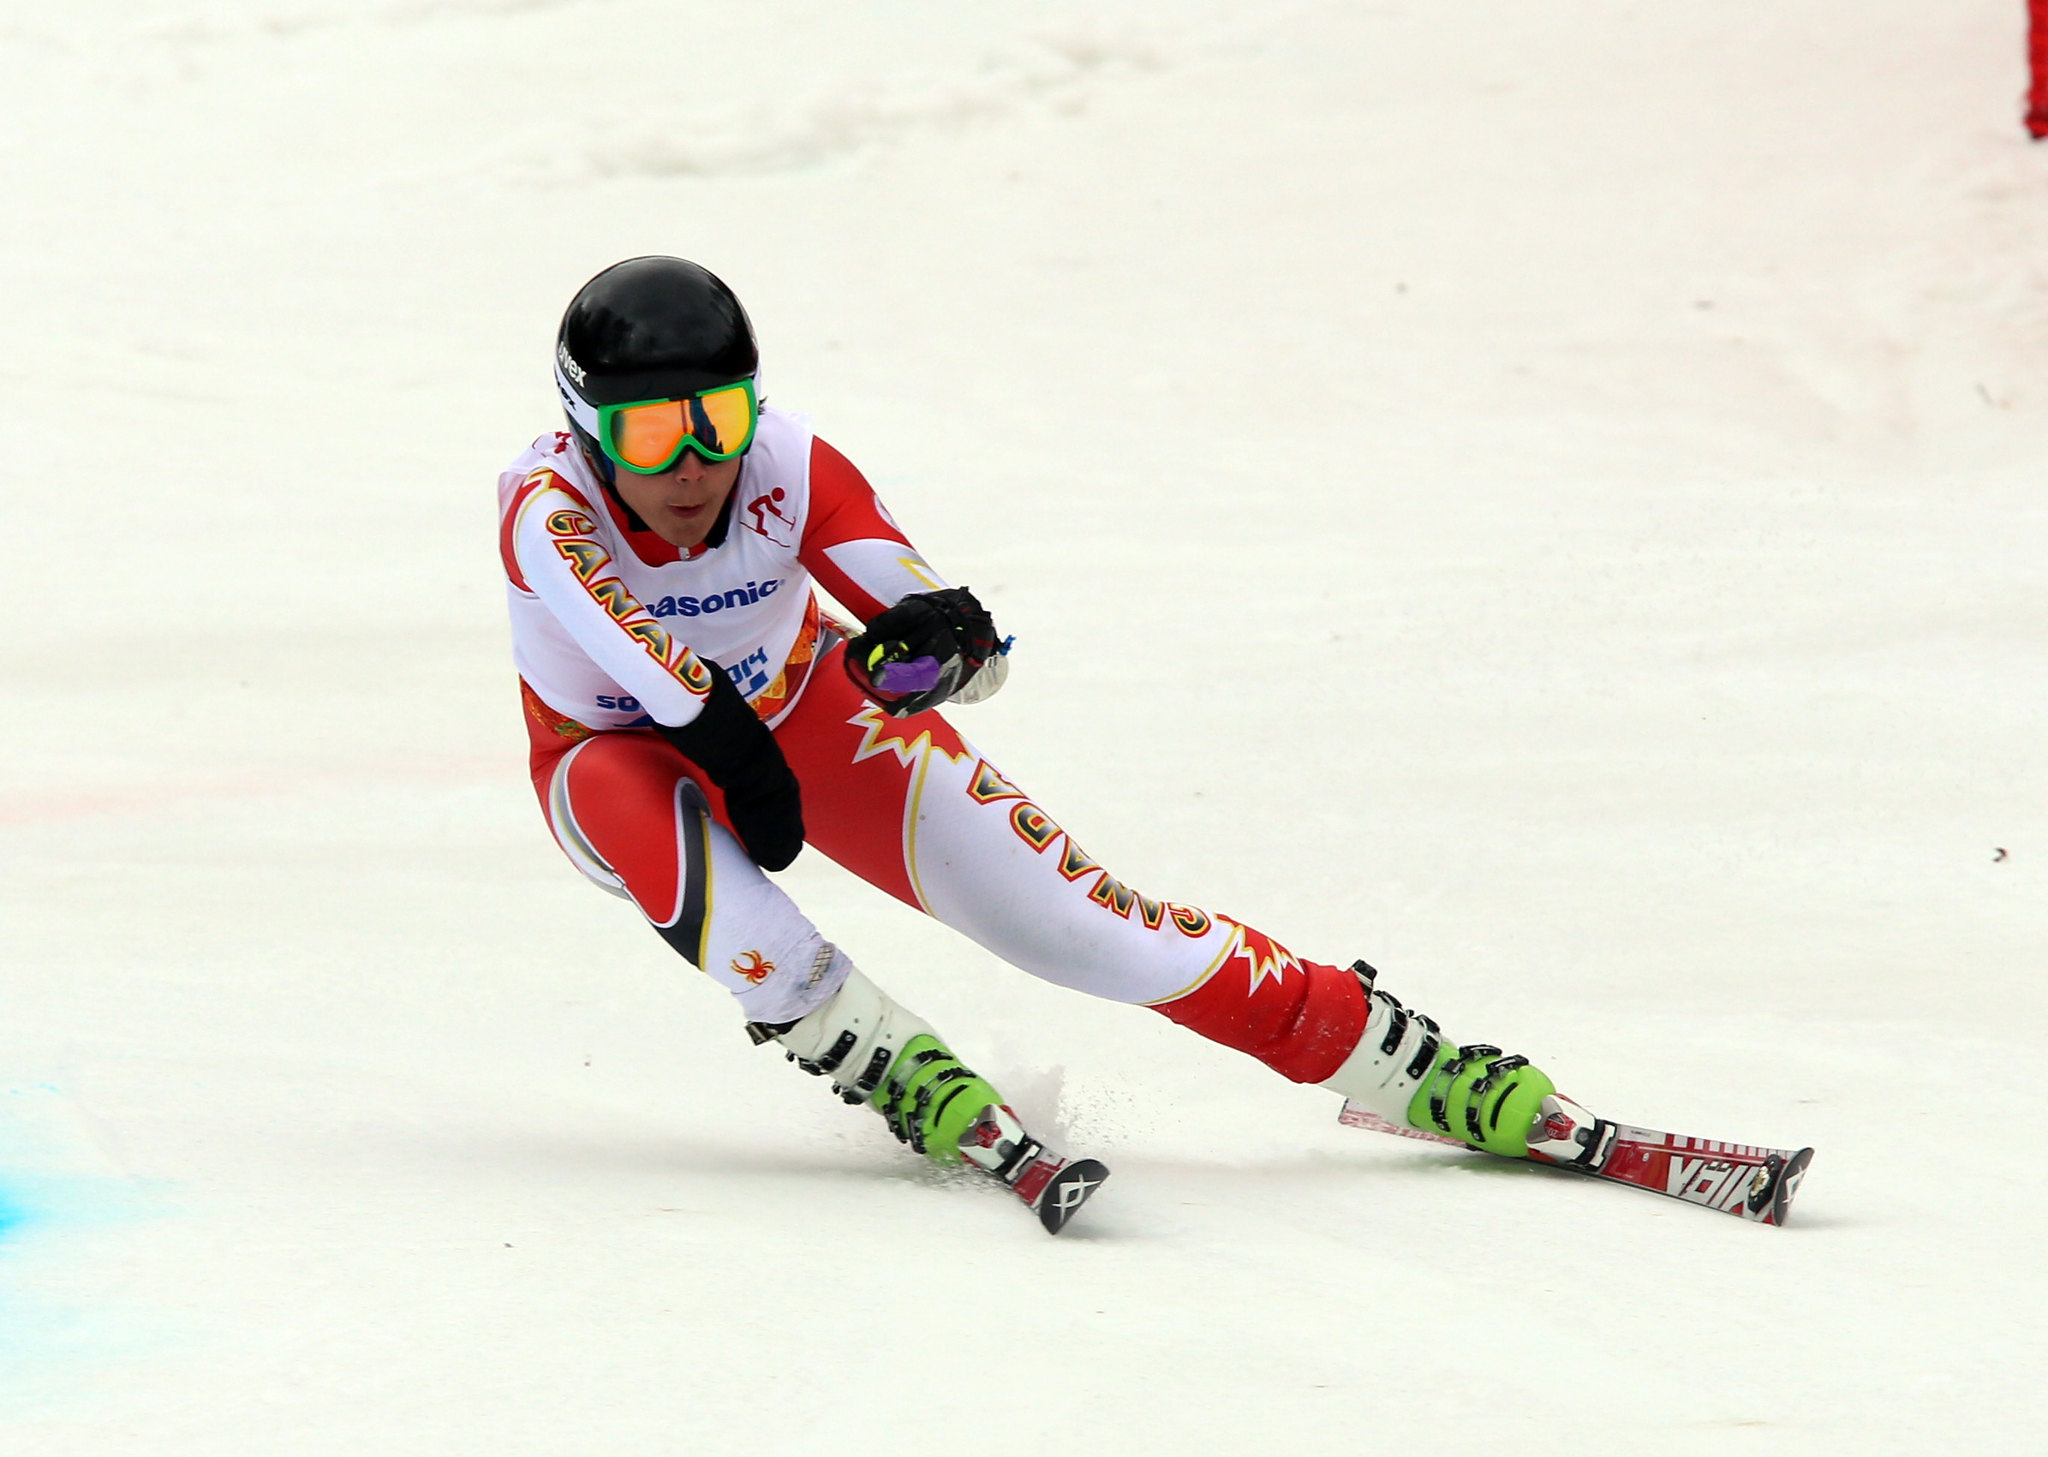 Kirk Schornstein competes in the giant slalom at the 2014 Paralympic Winter Games in Sochi, RUS